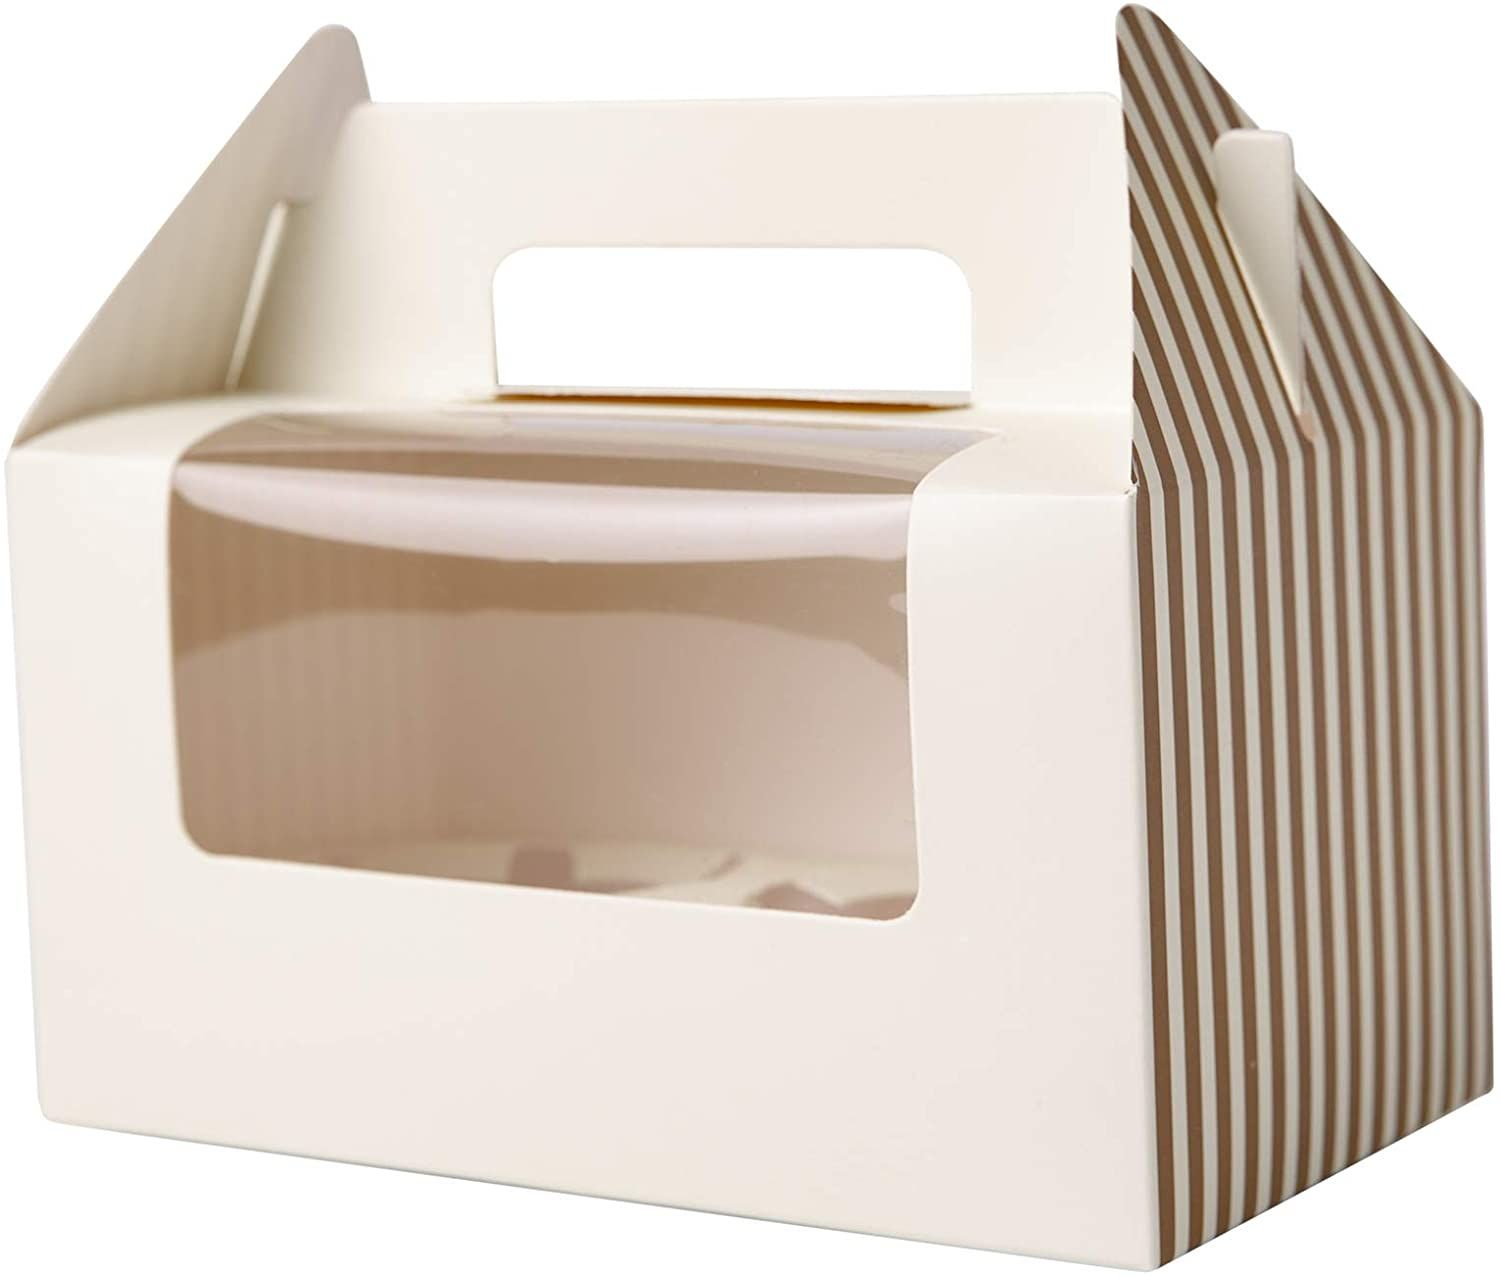 Paperboard Big Clear Window Collapsible Two Cupcake Carrying Gift Boxes Cupcake Holders Carrier